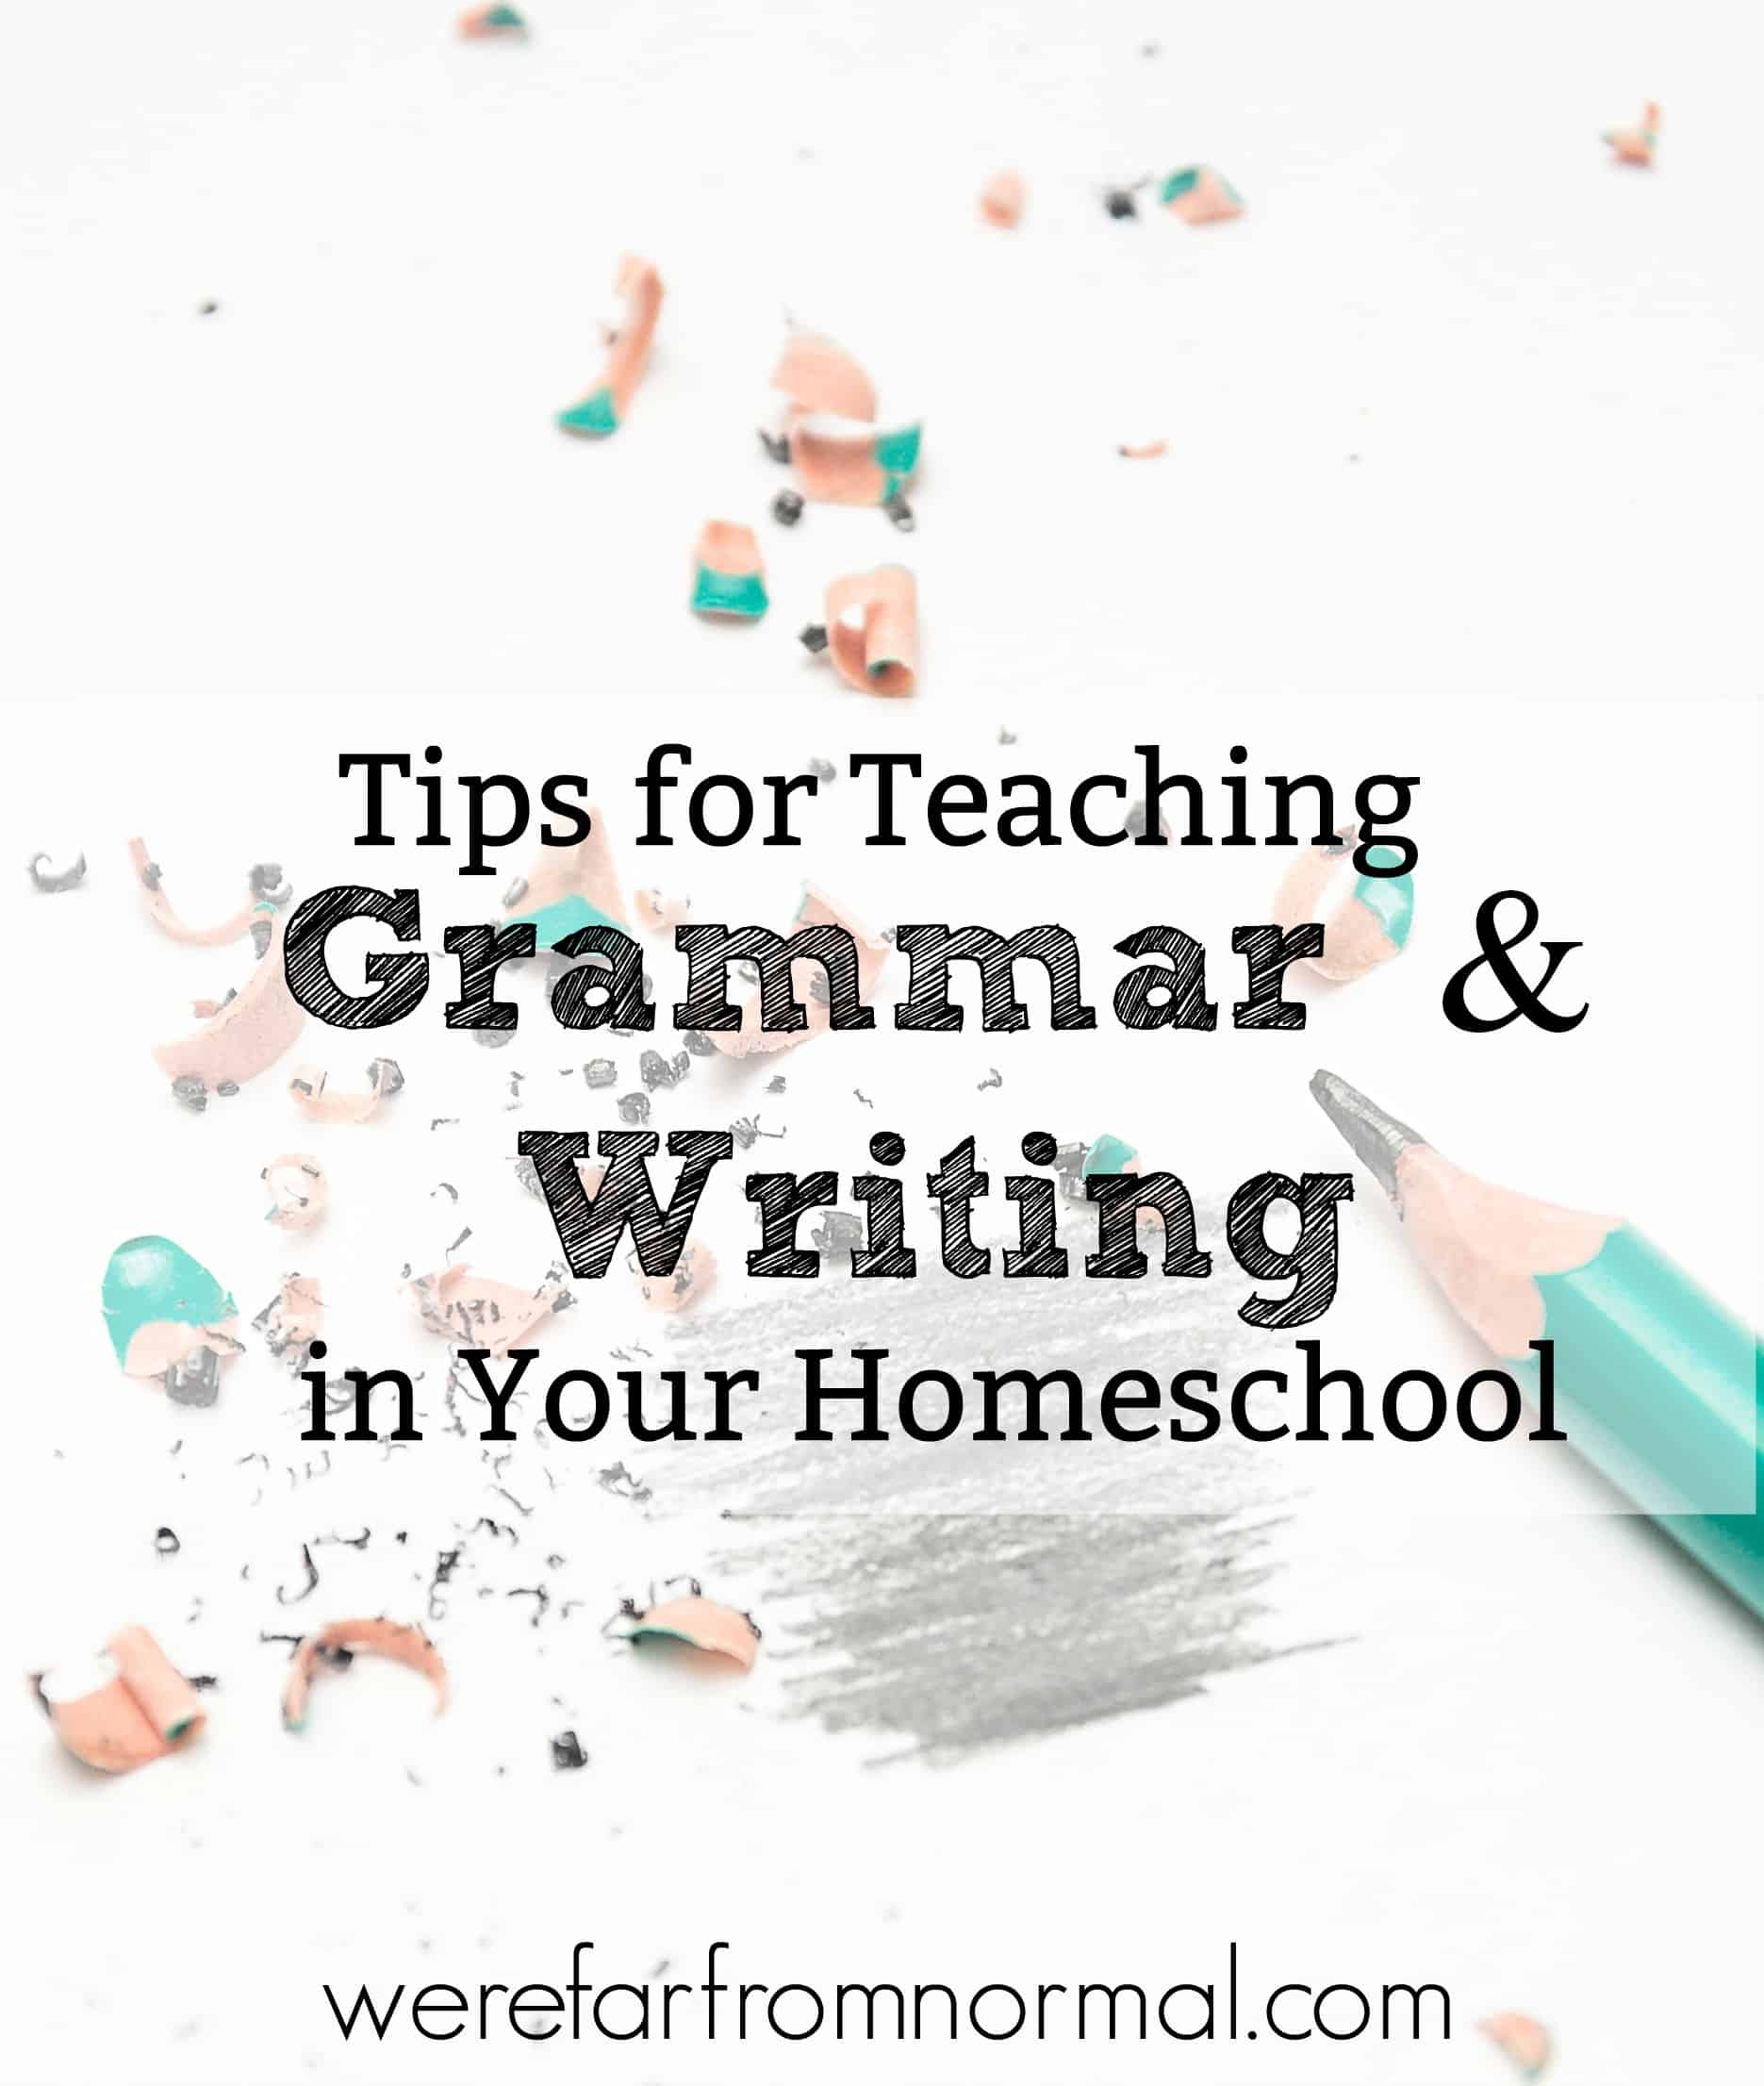 Tips For Teaching Grammar and Writing Skills in Your Homeschool